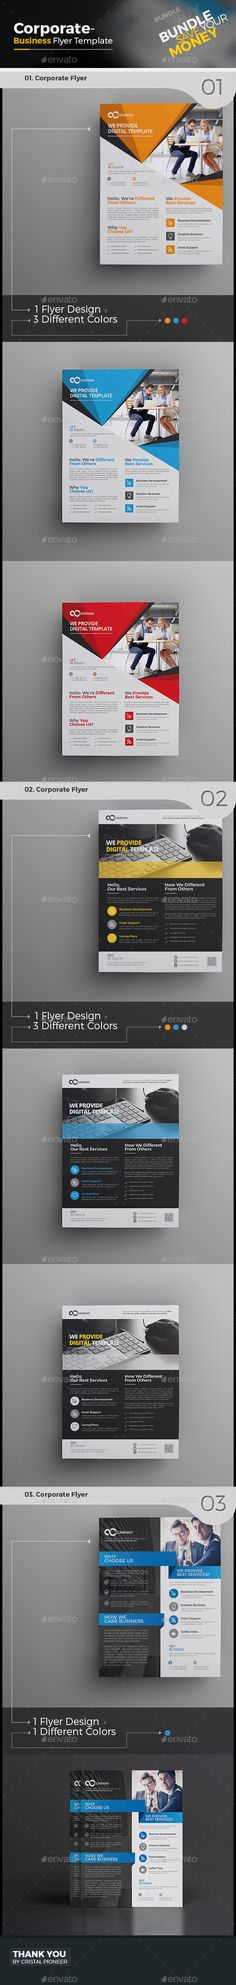 3 Corporate Flyer Bundle Templates PSD. Download here: http://graphicriver.net/item/corporate-flyer-bundle-3-in-1-/16046195?ref=ksioks